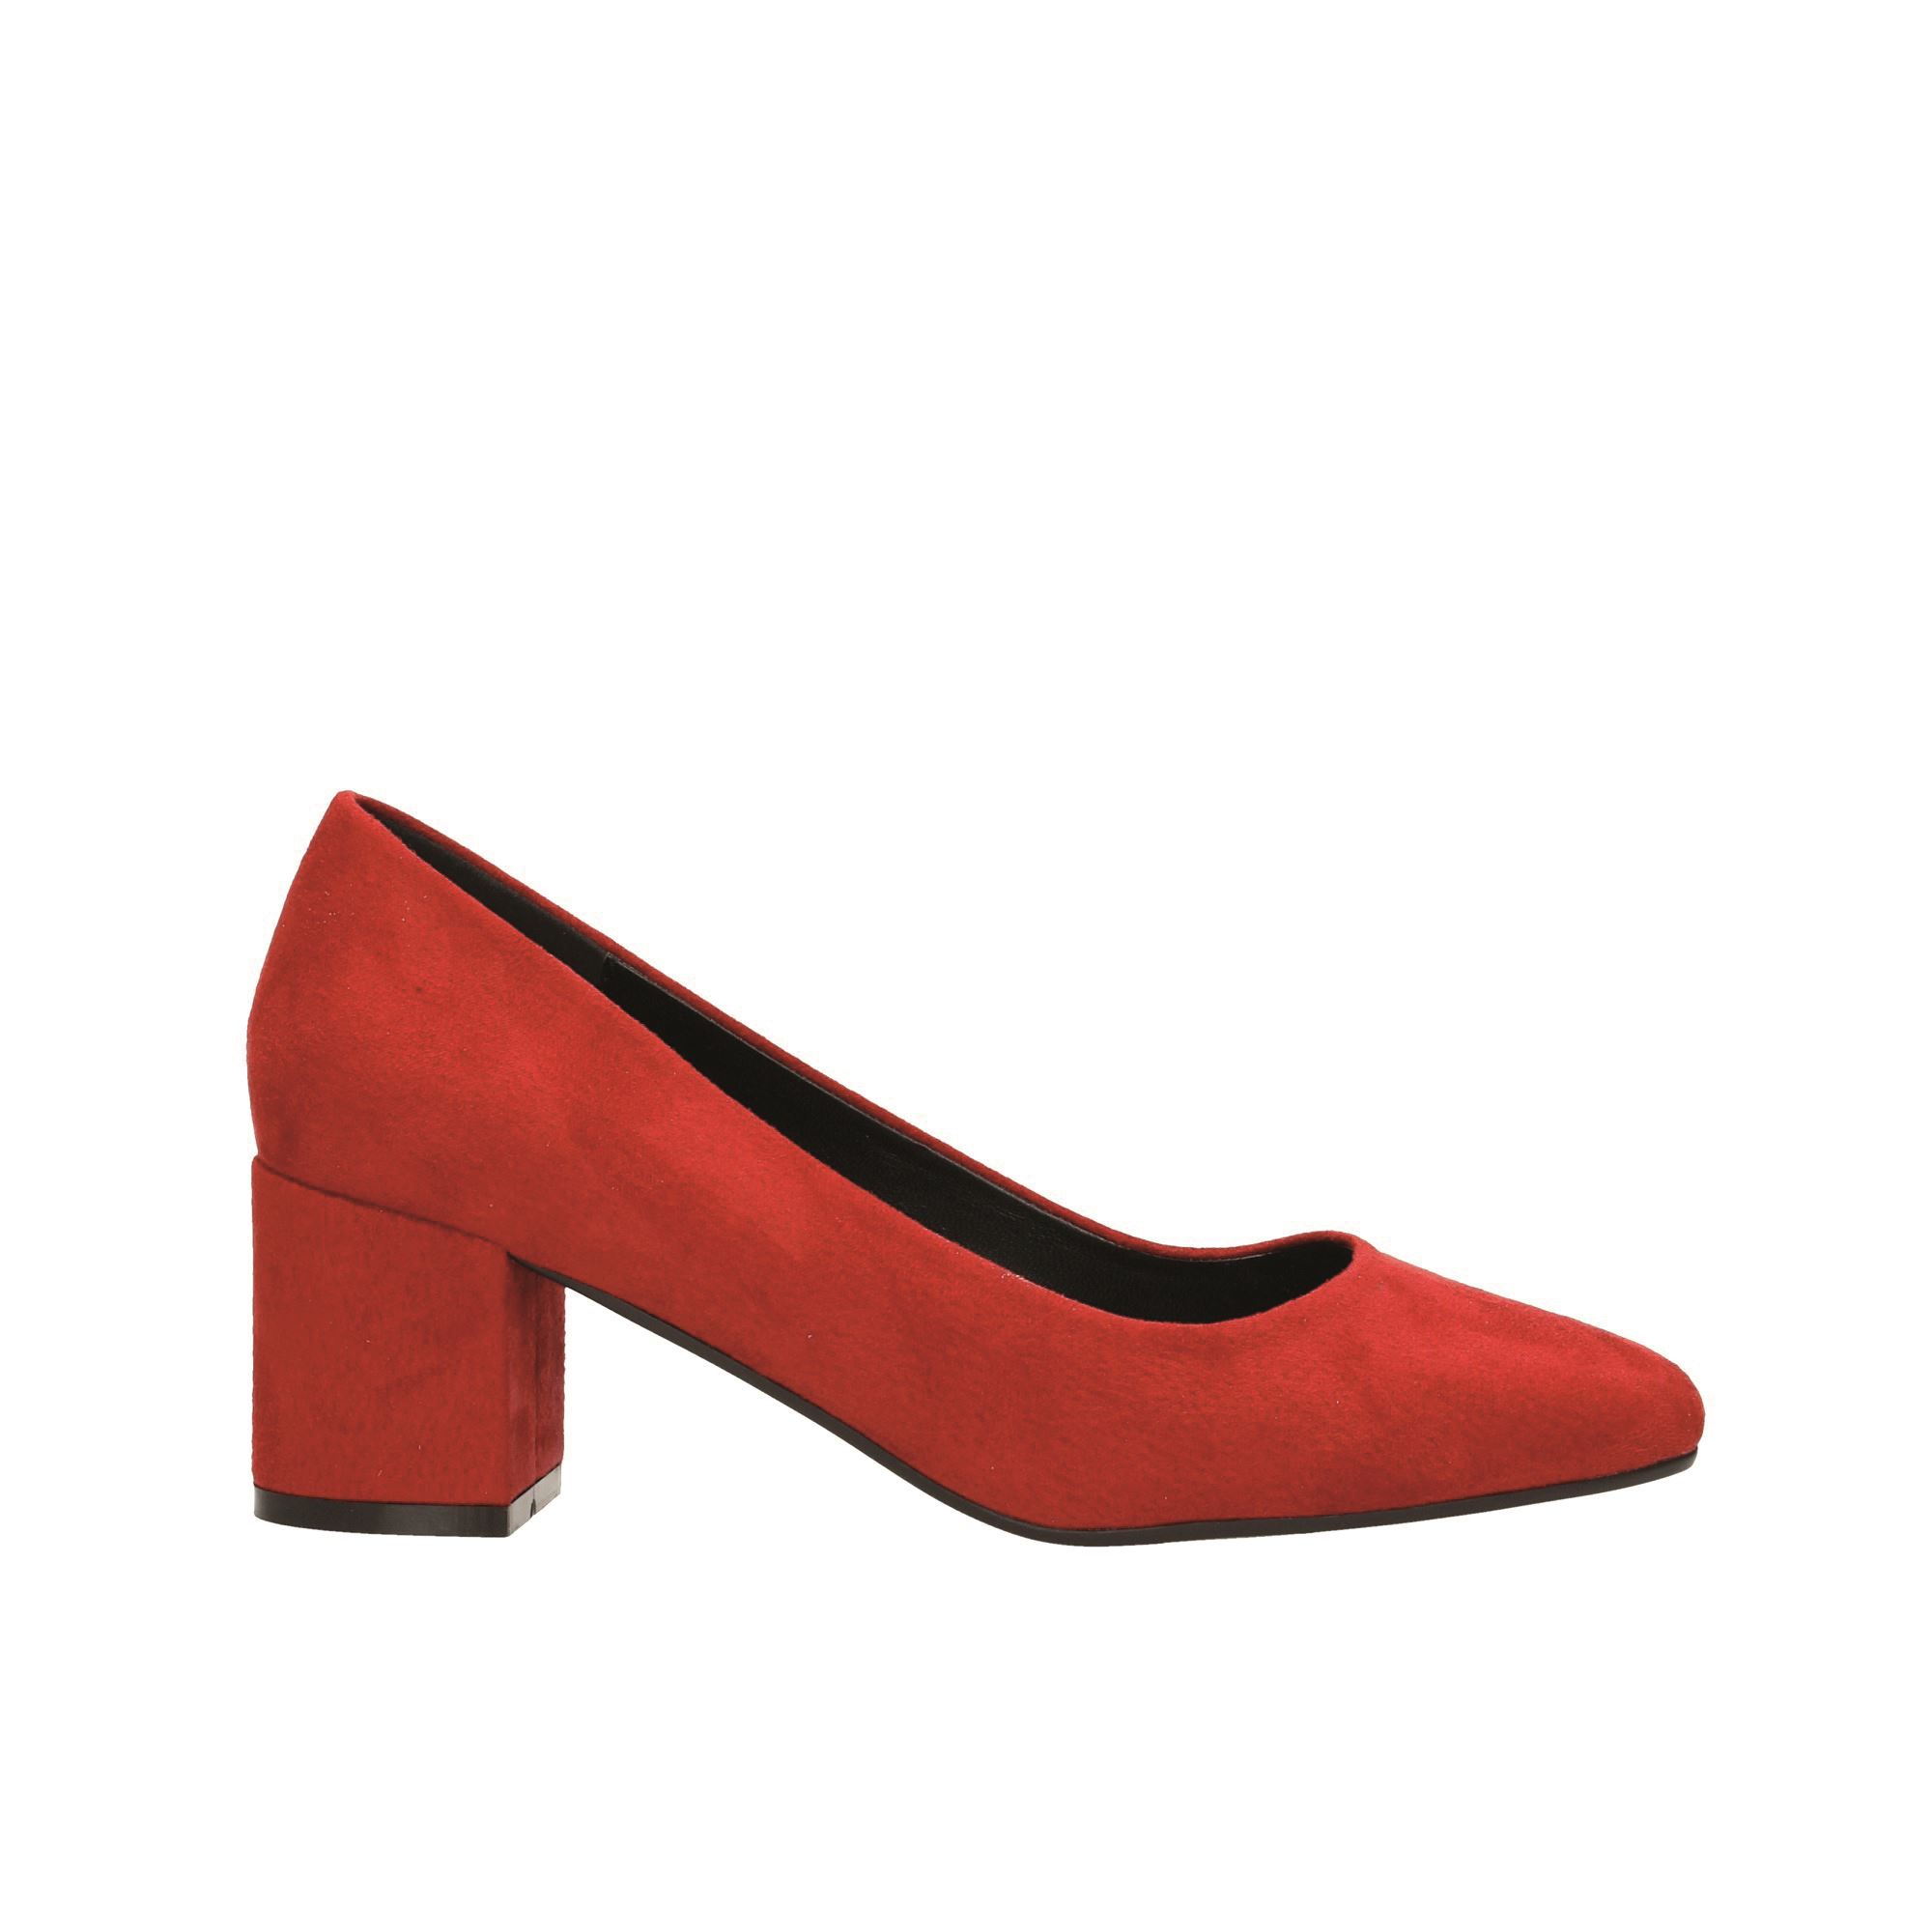 Tata Italia Shoes Woman Décolleté Red 9361A-1